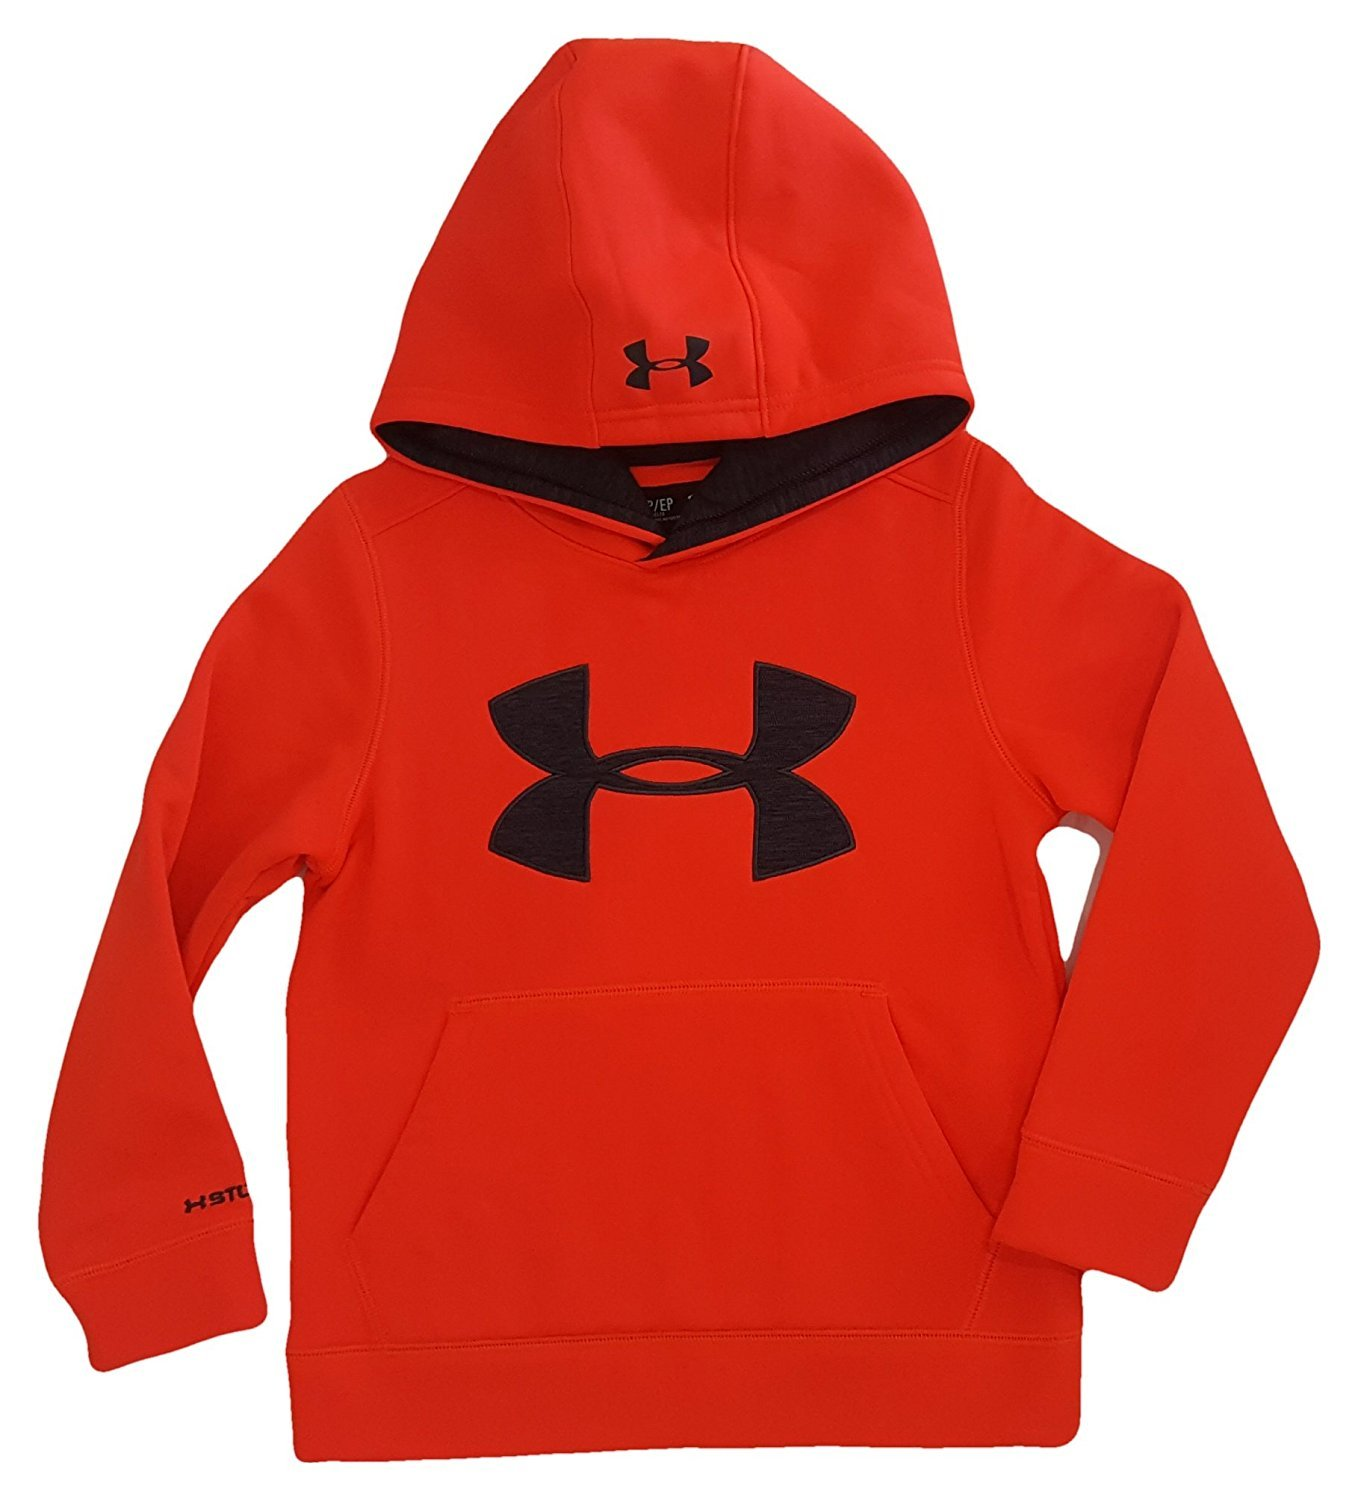 Under Armour Boy's Storm Armour Fleece Big Logo Hoodie Sweatshirt Under Armour Kids 1259690-003-MaParent